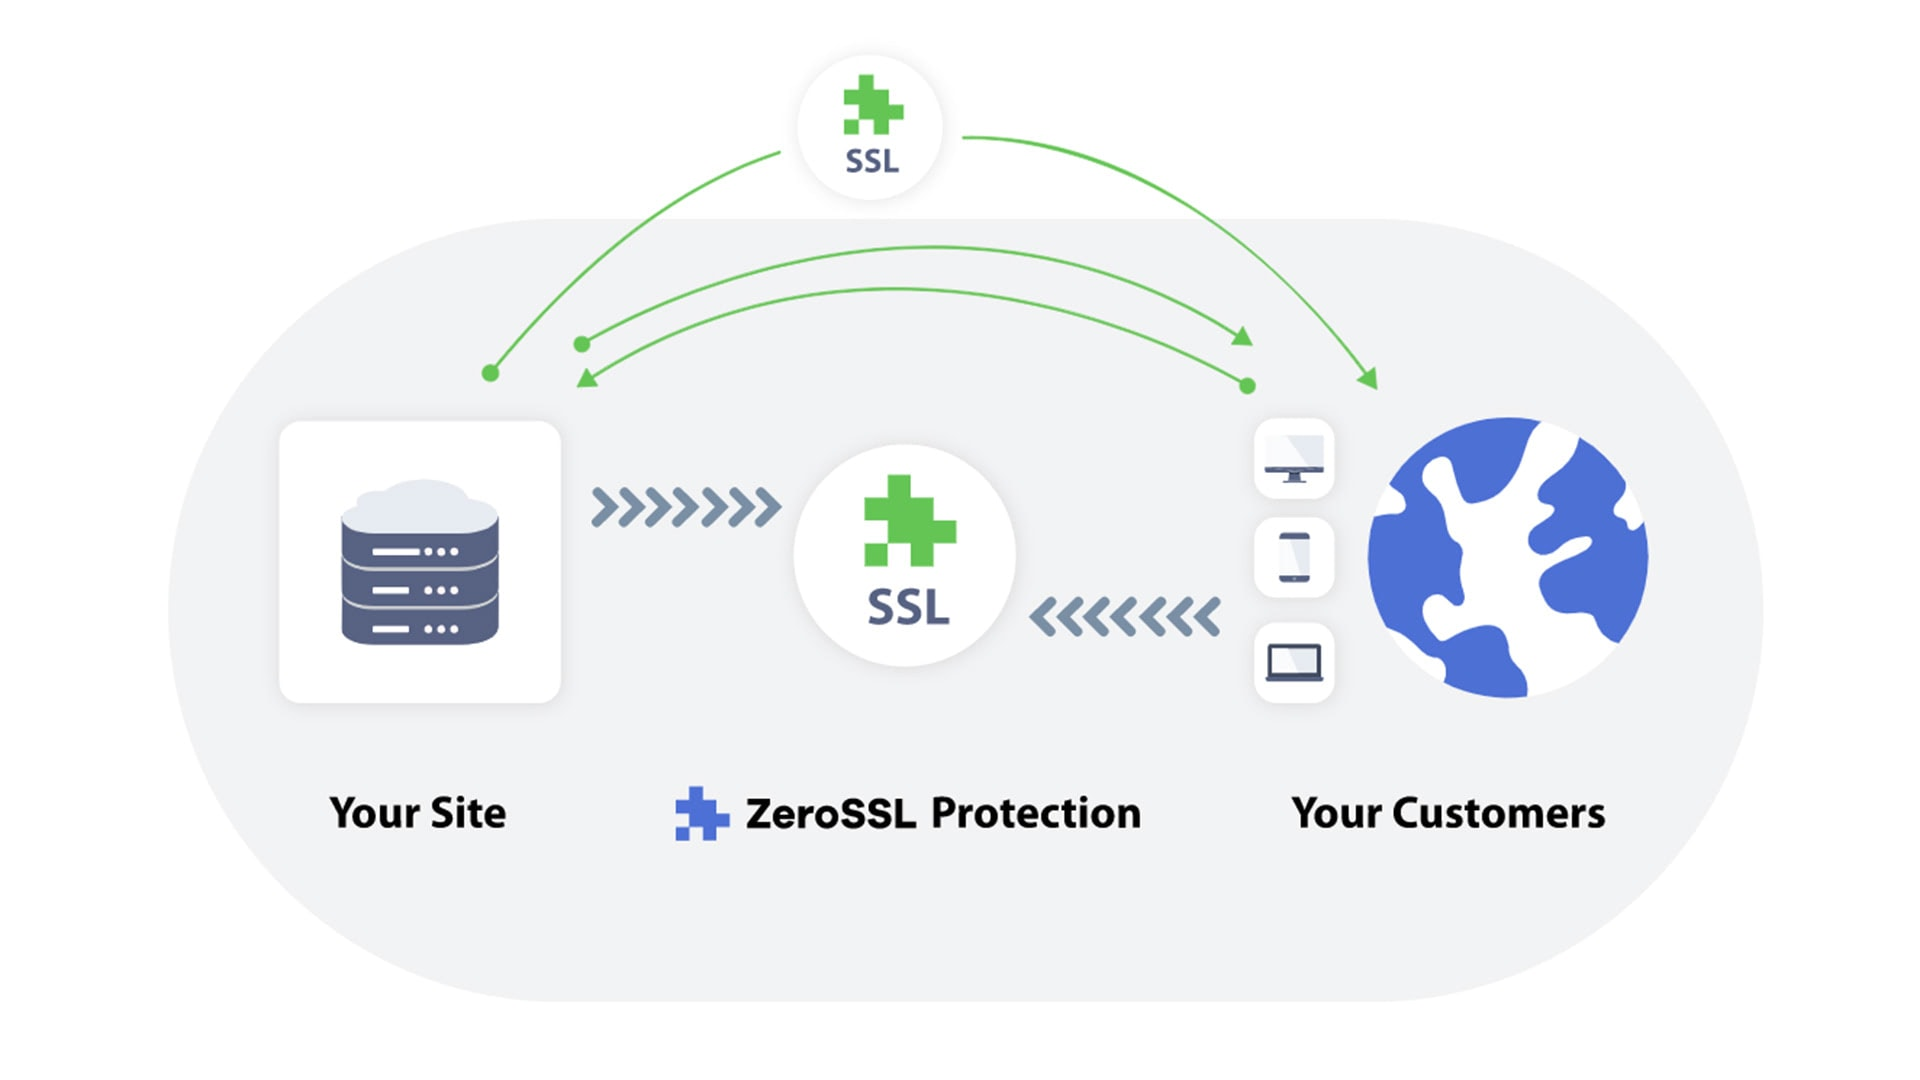 What is ZeroSSL?